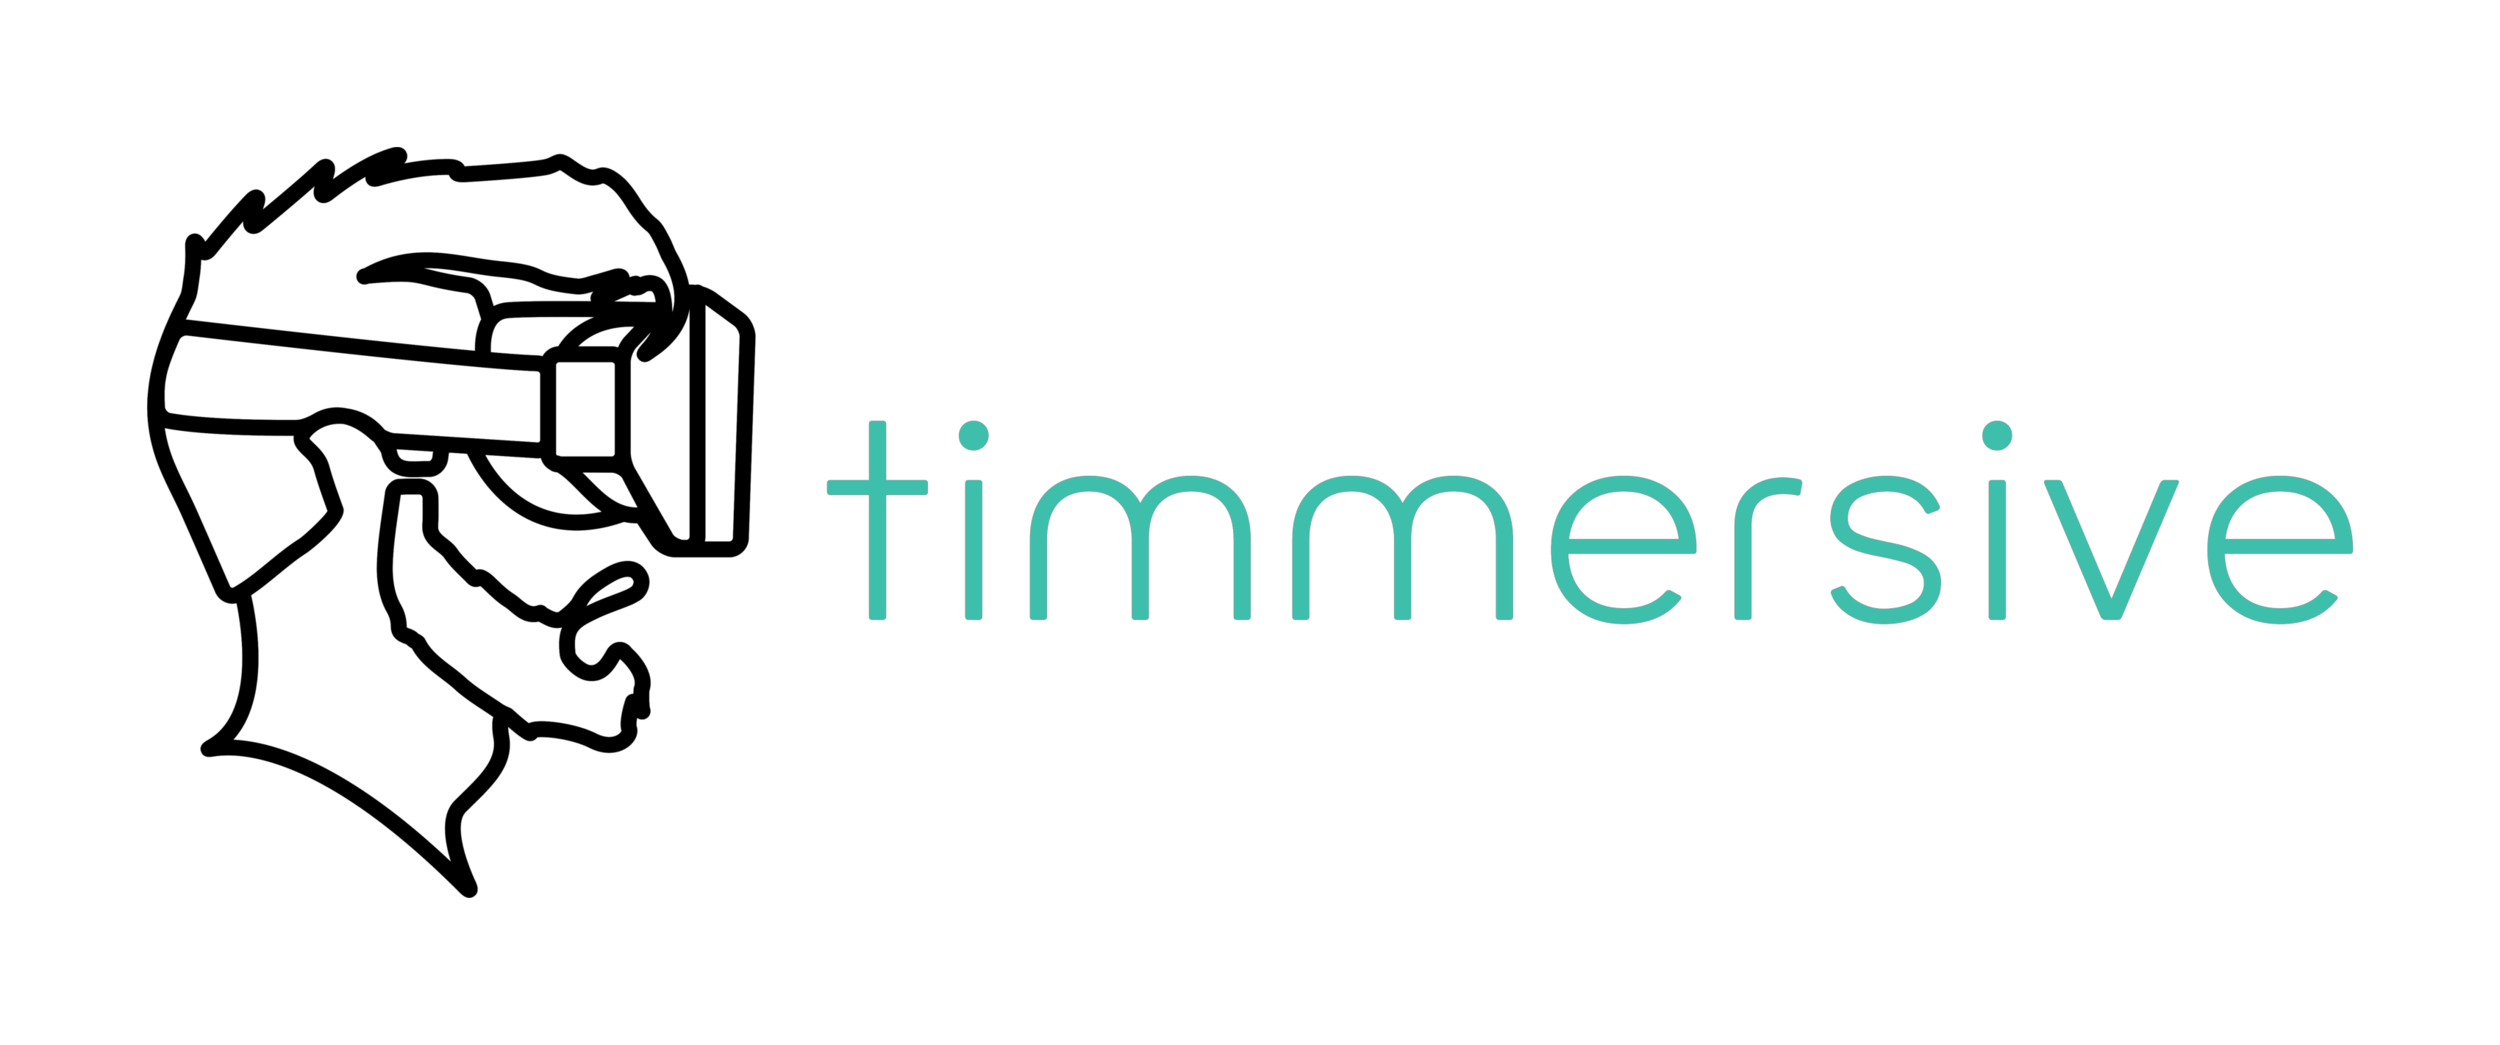 timmersive_logo_transparent_background.png